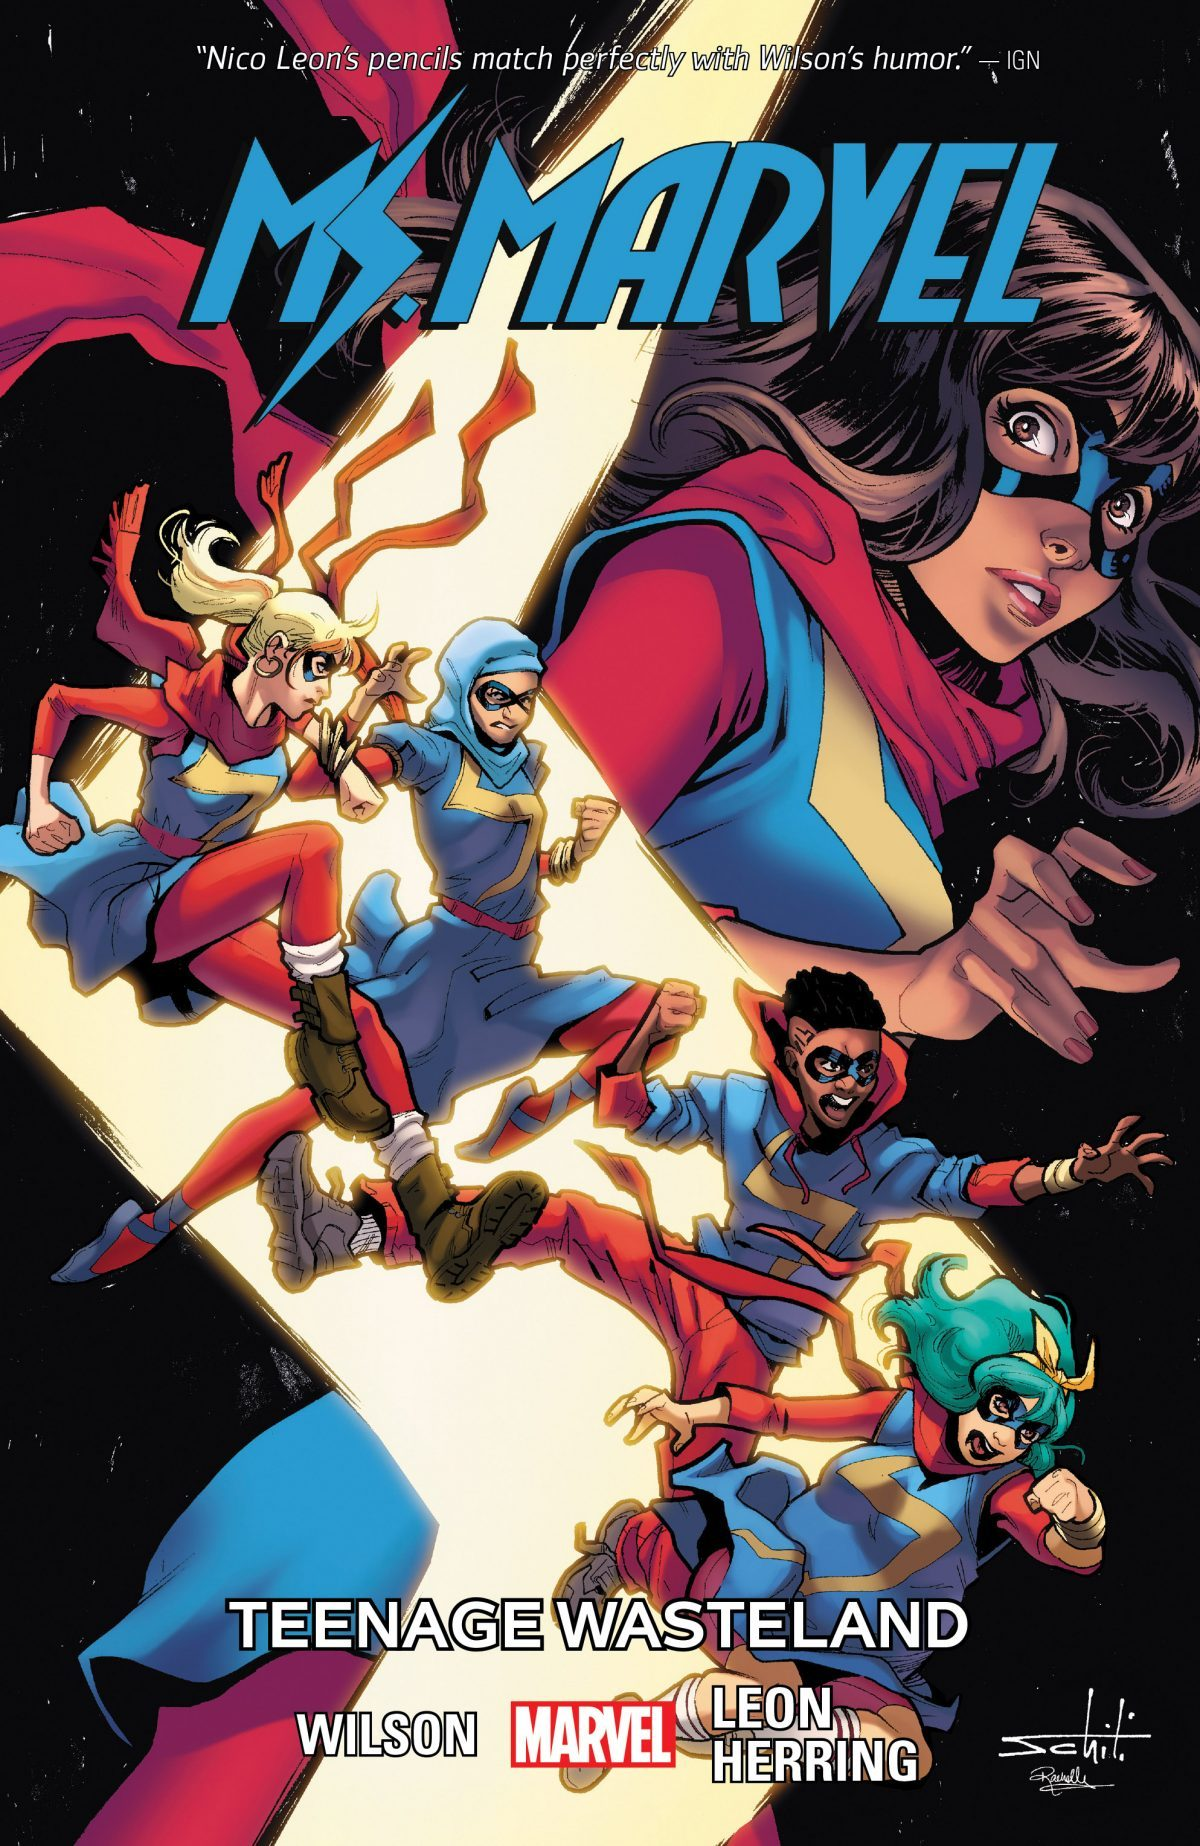 Vol. 9 allows Wilson to show off Ms. Marvel's strong supporting cast of characters.